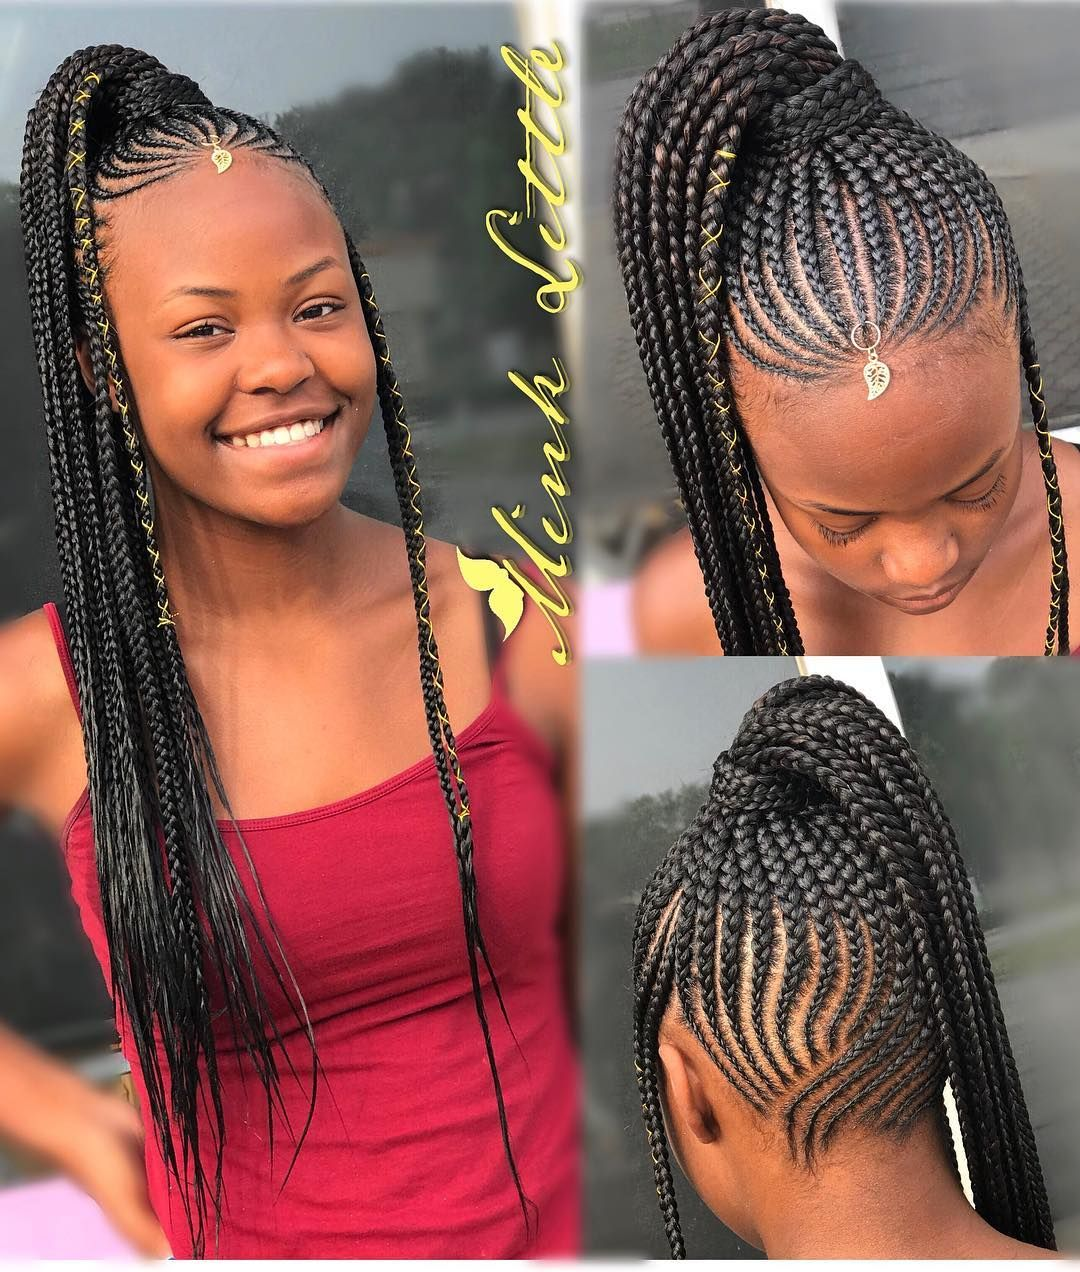 Small Feed In Ponytail Feedins Feedinbraids Feedincornrows Minklittle Minklittlellc Feed In Braids Hairstyles Feed In Ponytail Feed In Braids Ponytail